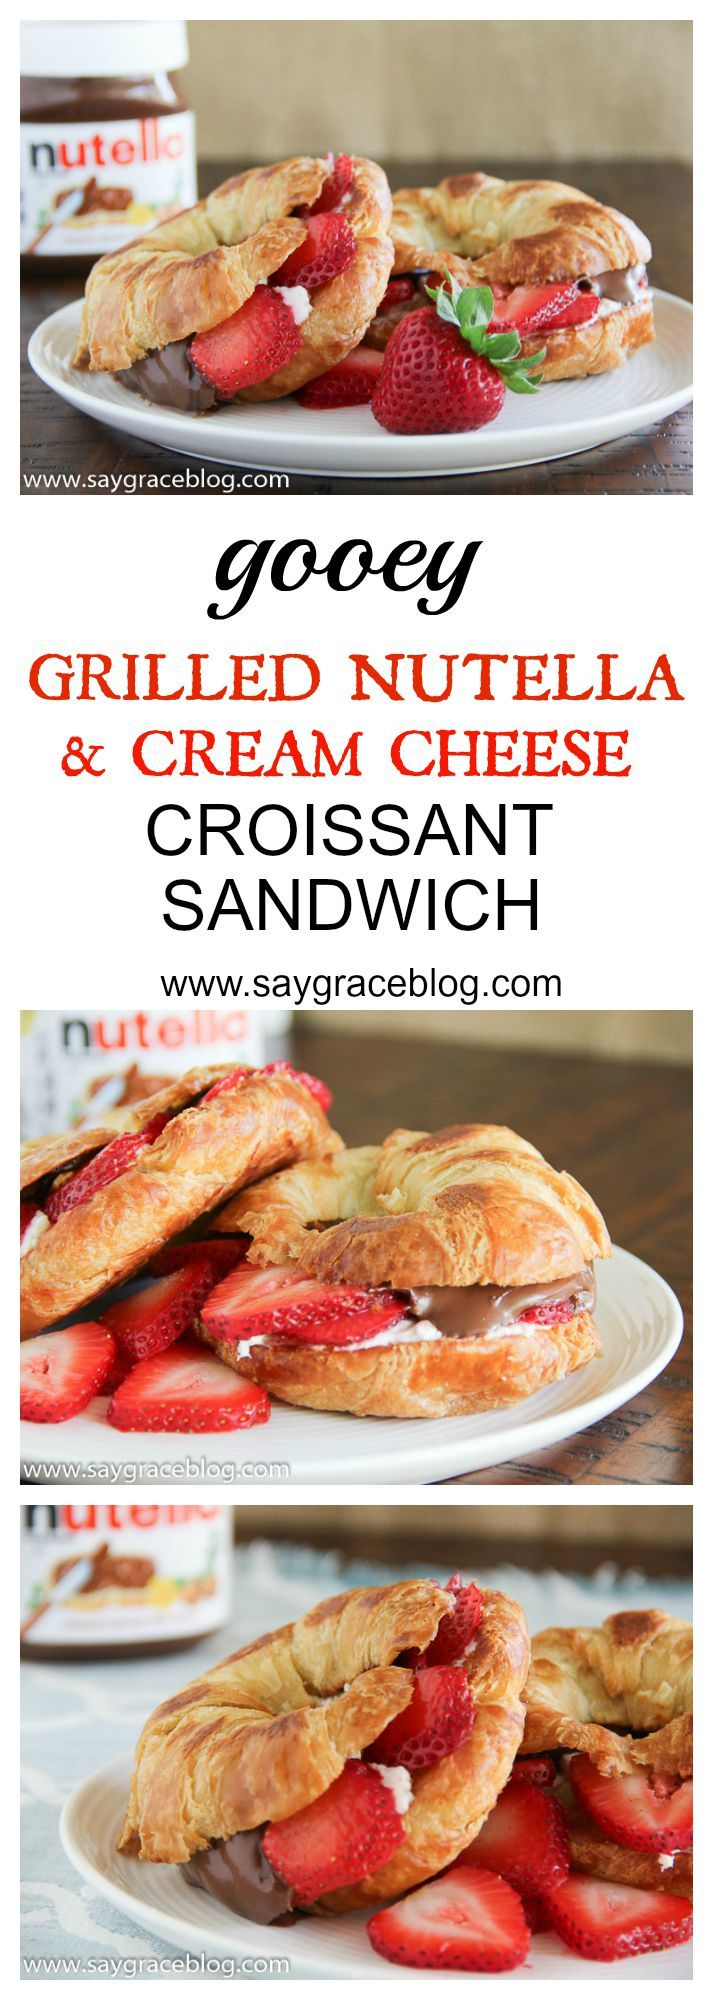 A chocolaty hazelnut spread meets cream cheese and fresh strawberries all grilled on a buttery croissant! (nutella snacks cream cheeses)